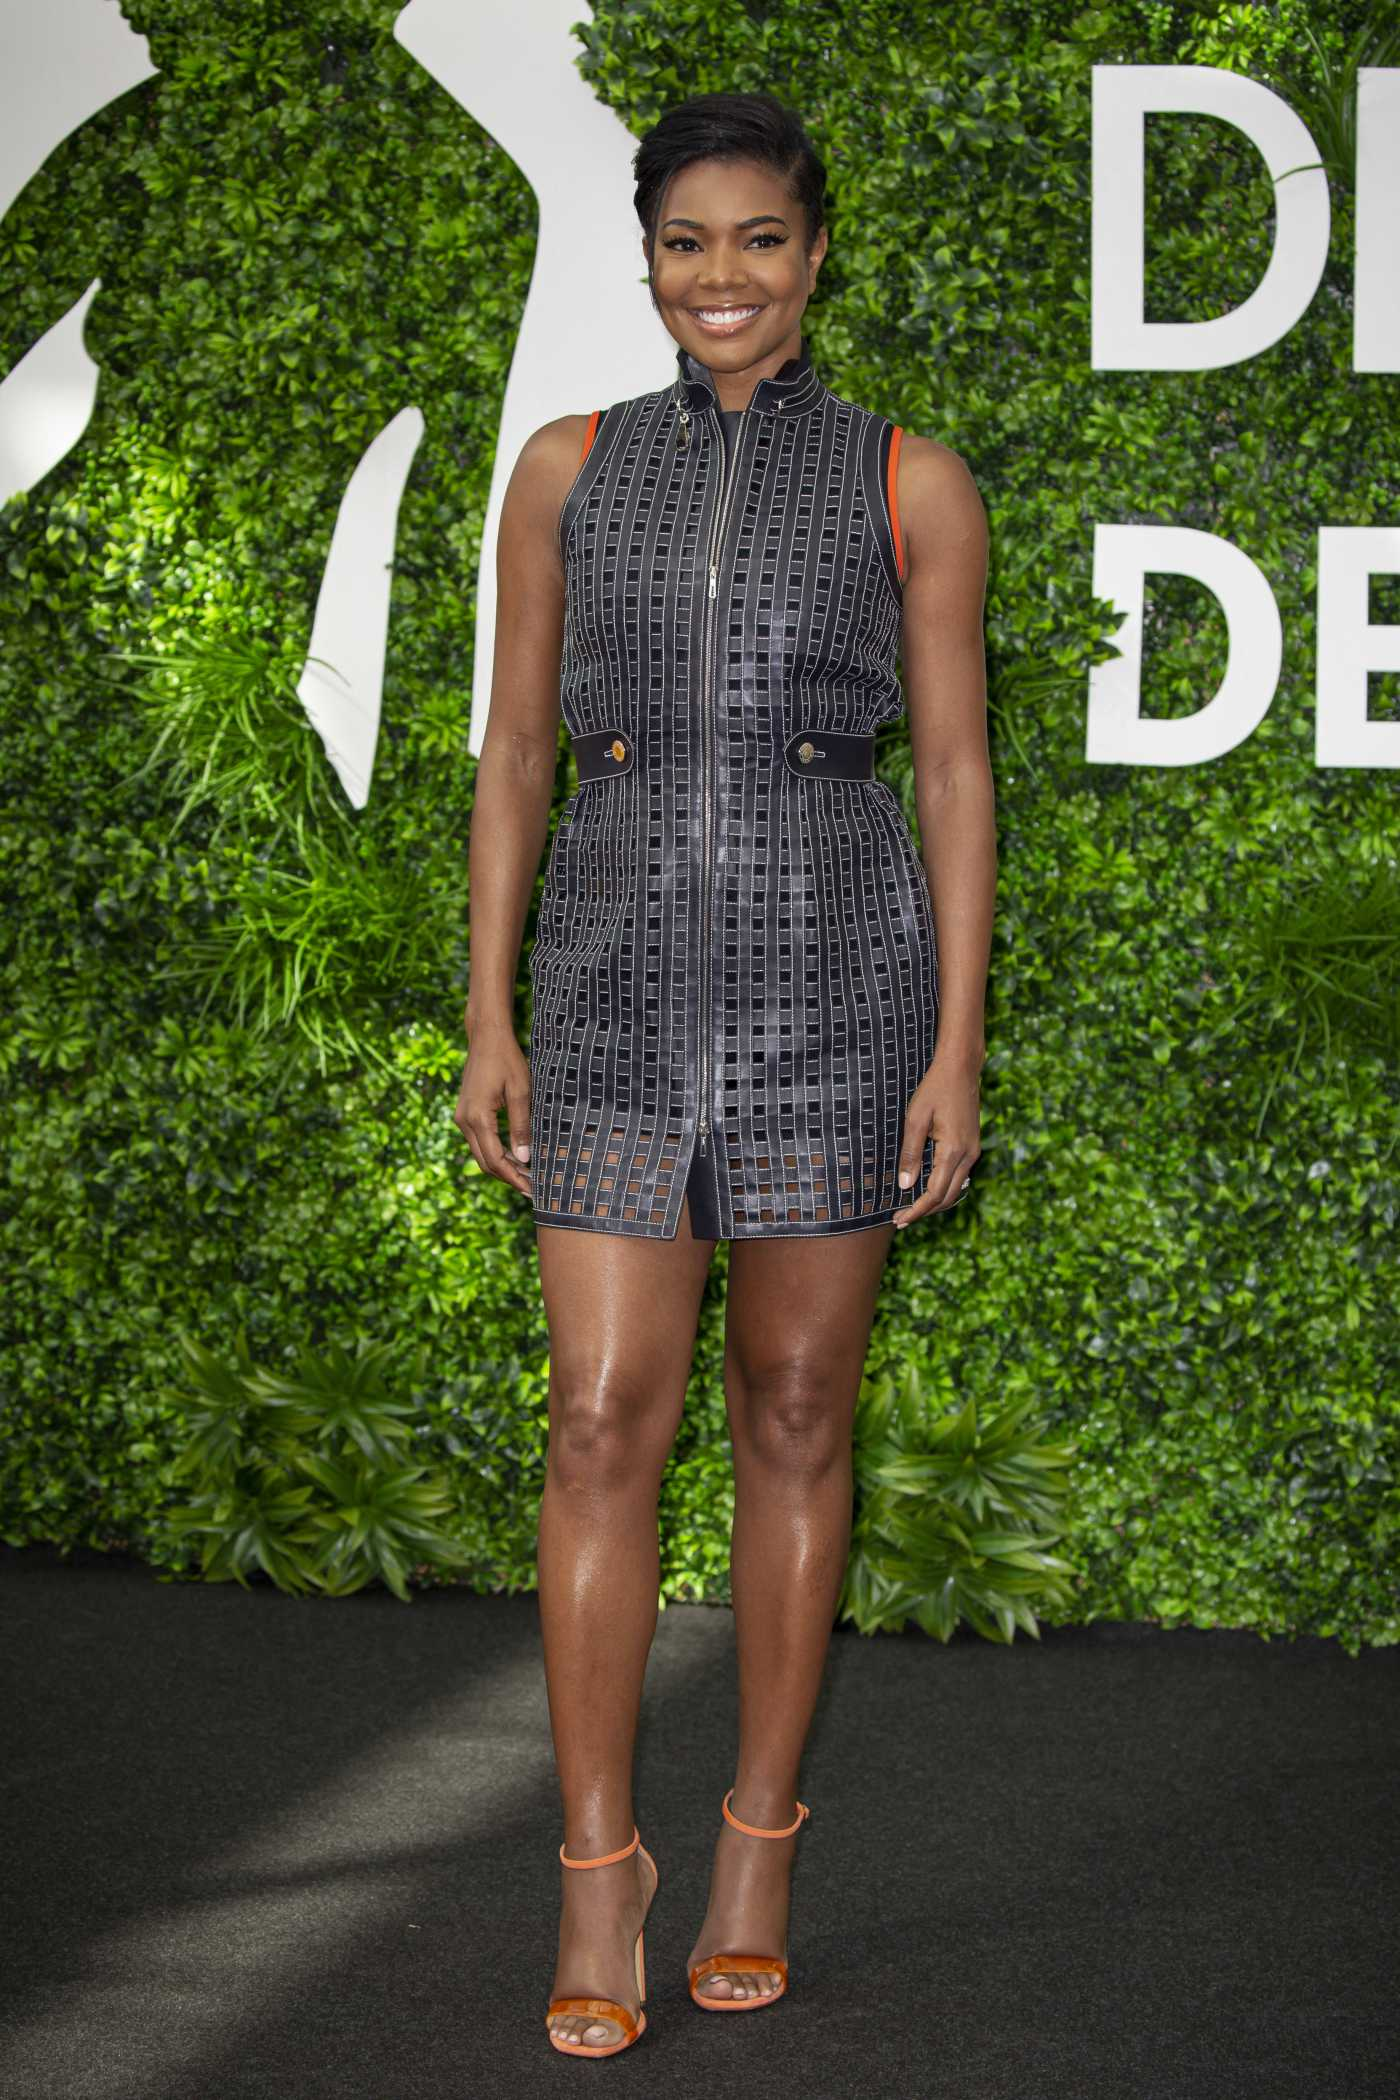 Gabrielle Union Attends LA's Finest Photocall During the 59th Monte Carlo TV Festival in Monte Carlo 06/15/2019